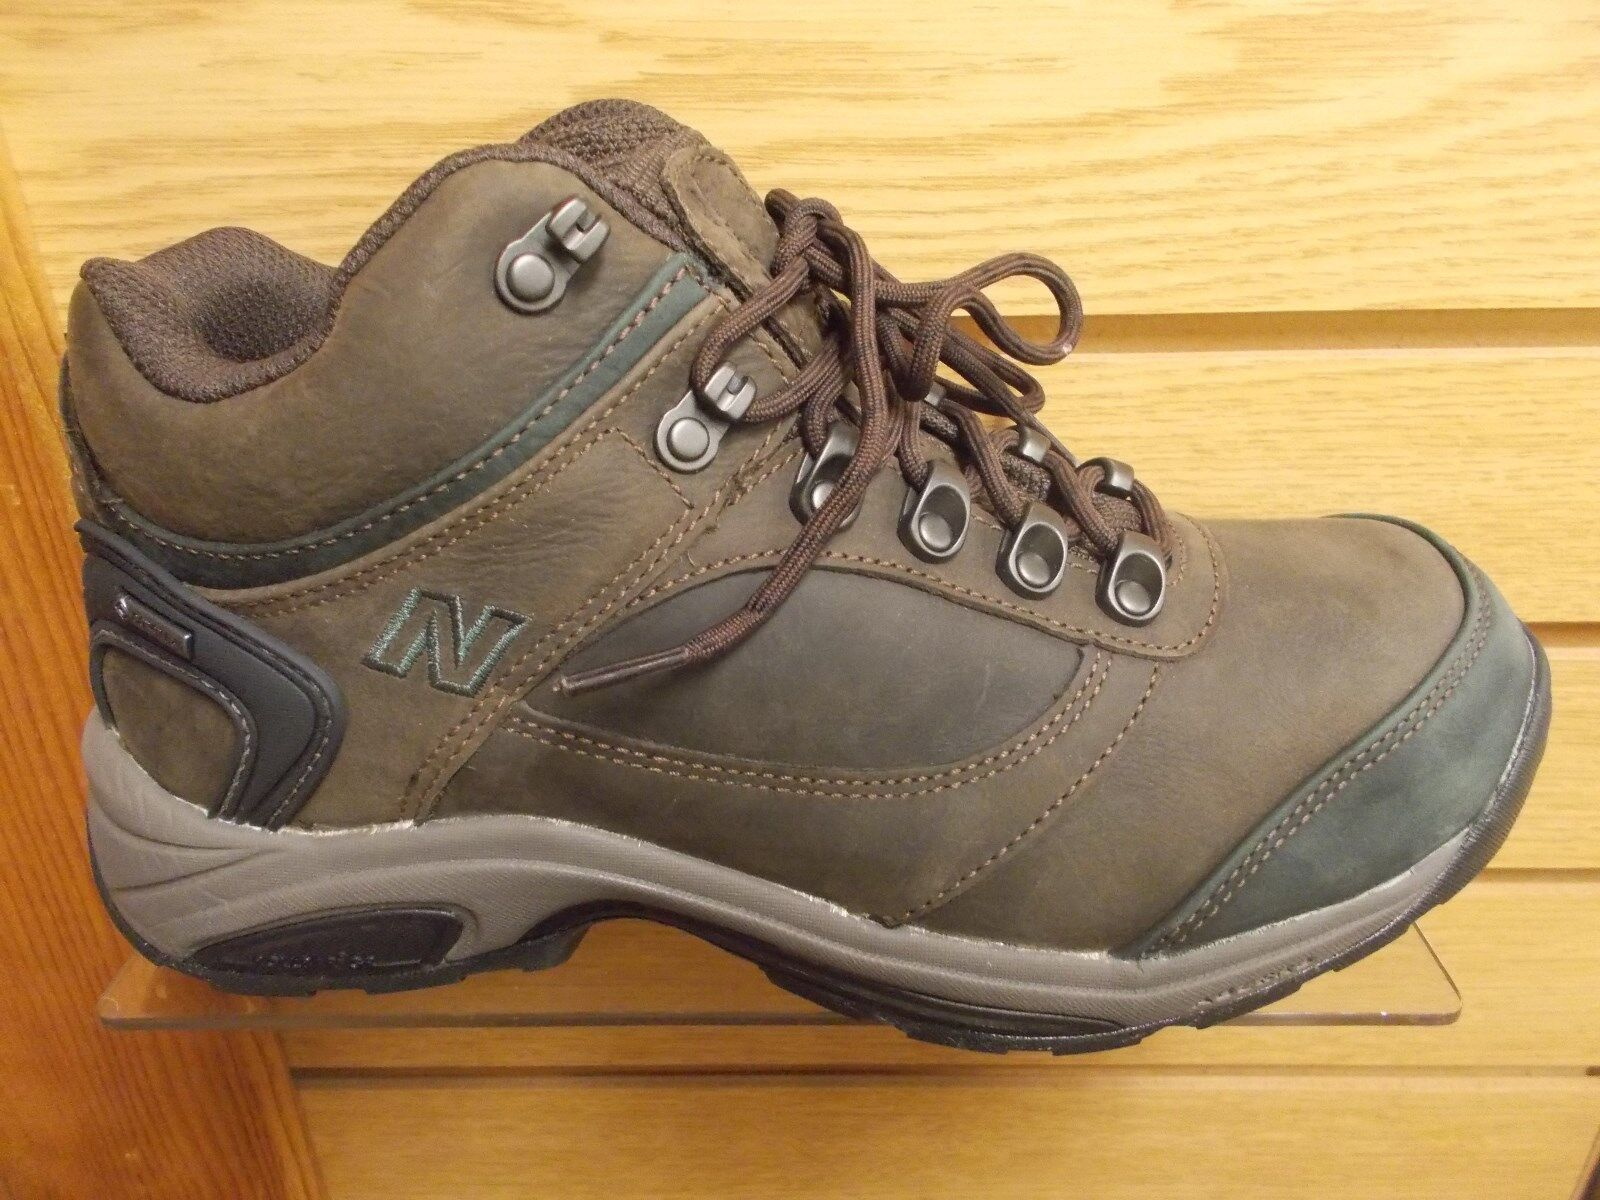 1cba5dd8a NEW BALANCE MW978GT MEN'S GORE-TEX TRAIL WALKING SHOES 4E X- WIDE MULTI  SIZES